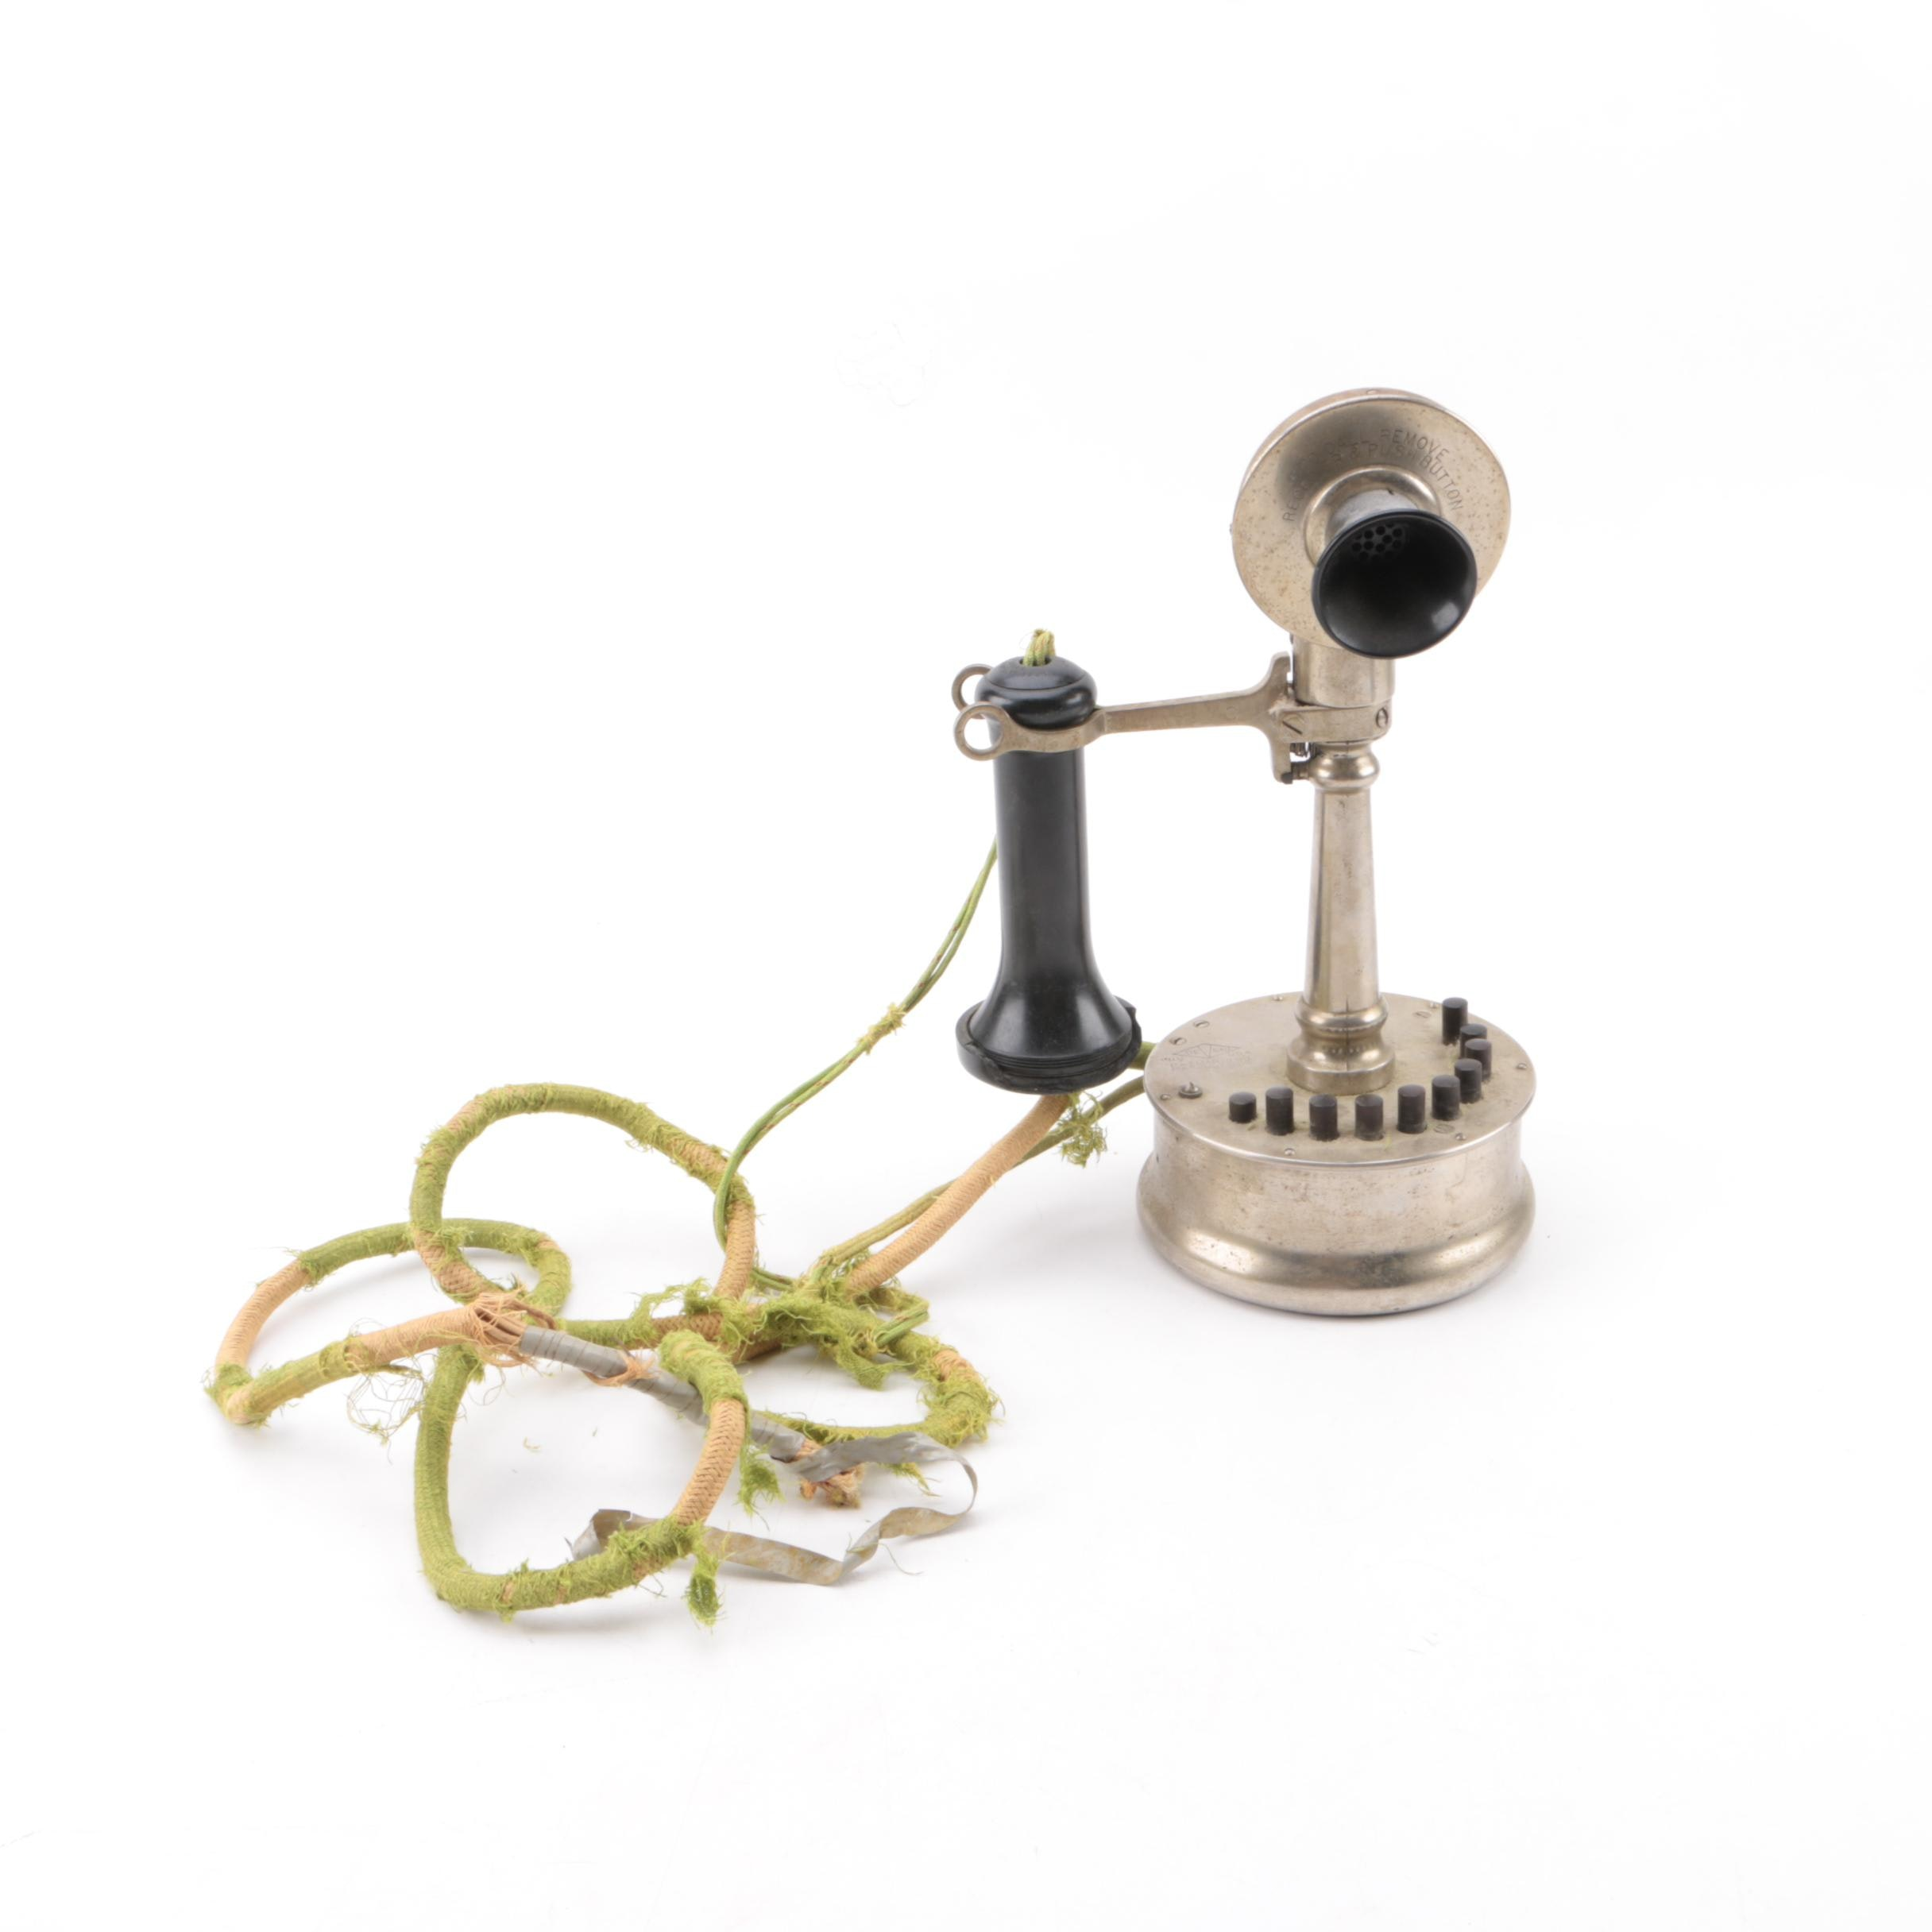 Early 20th Century Deveau Candlestick Push Button Telephone